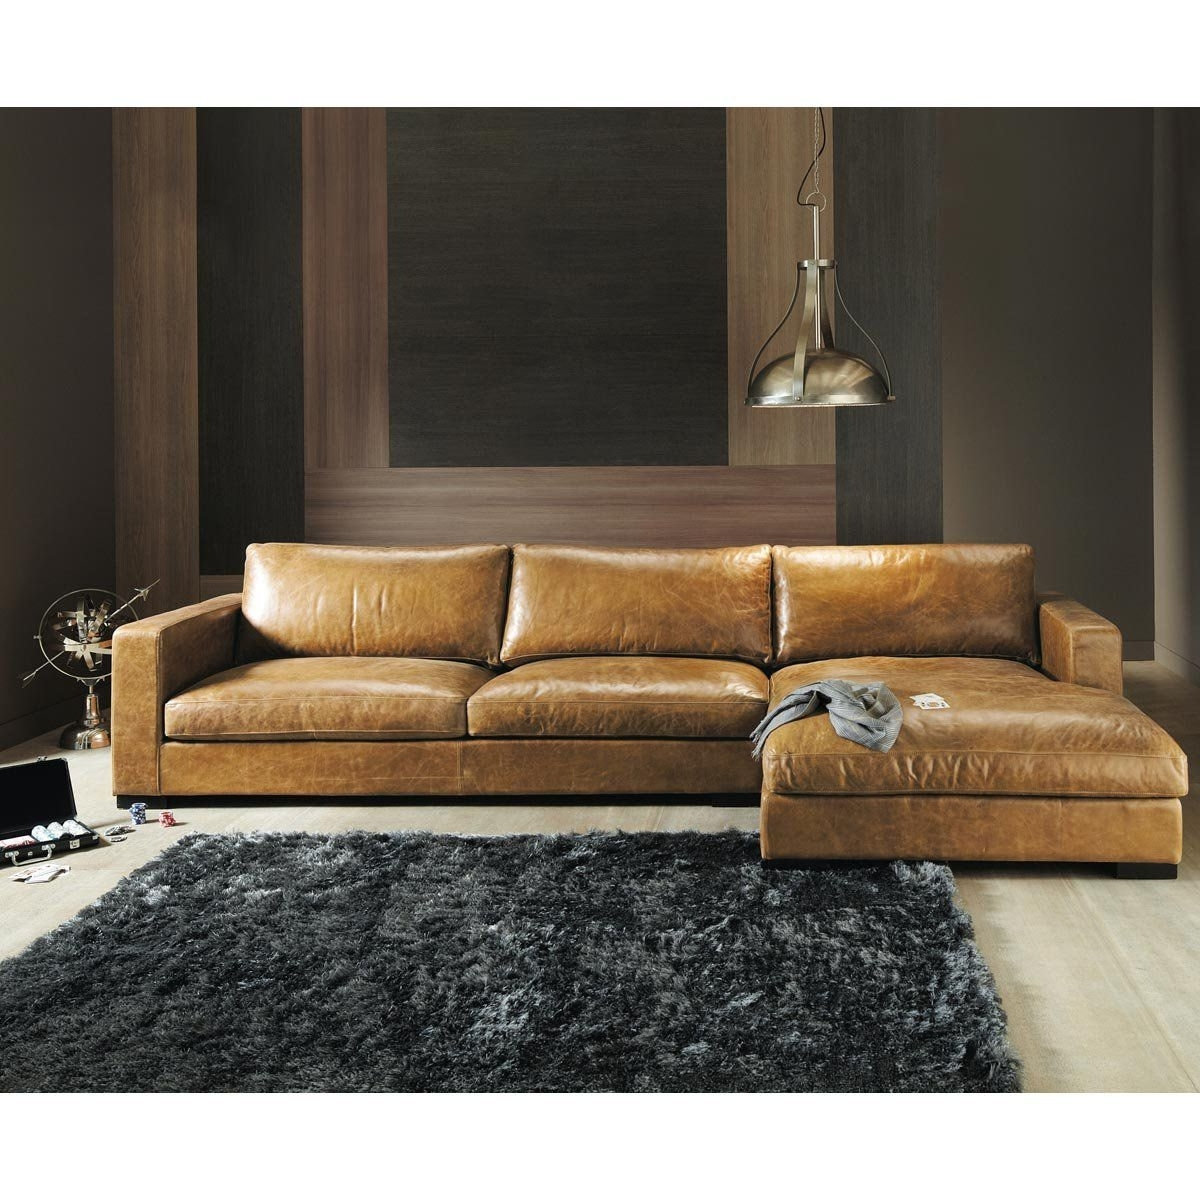 Sofa Seats, Leather Pertaining To Trendy Camel Sectional Sofas (View 15 of 20)